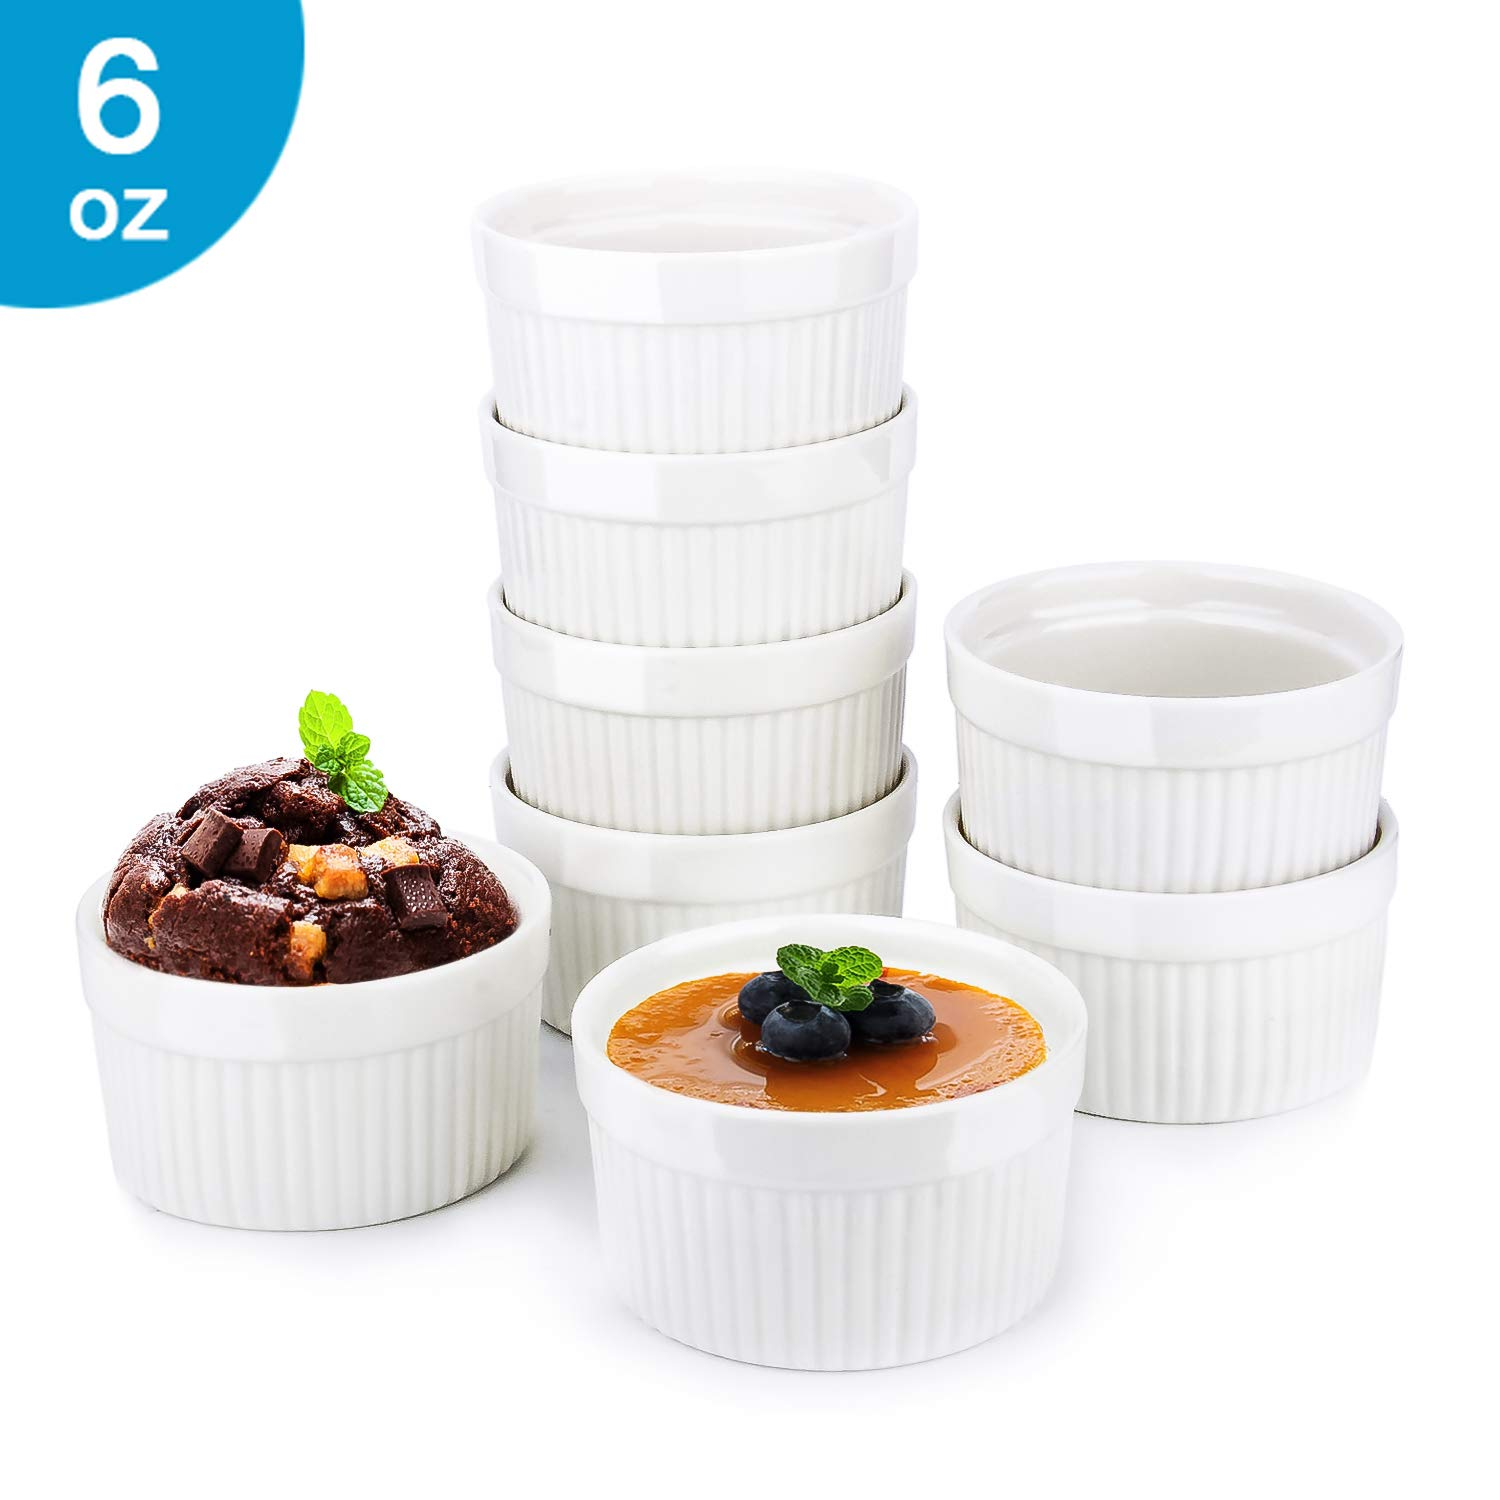 6 Oz Ramekin Bowls,8 PCS Bakeware Set for Baking and Cooking, Oven Safe Sleek Porcelain White Ramikins for Pudding, Creme Brulee, Custard Cups and Souffle Small instant table tray